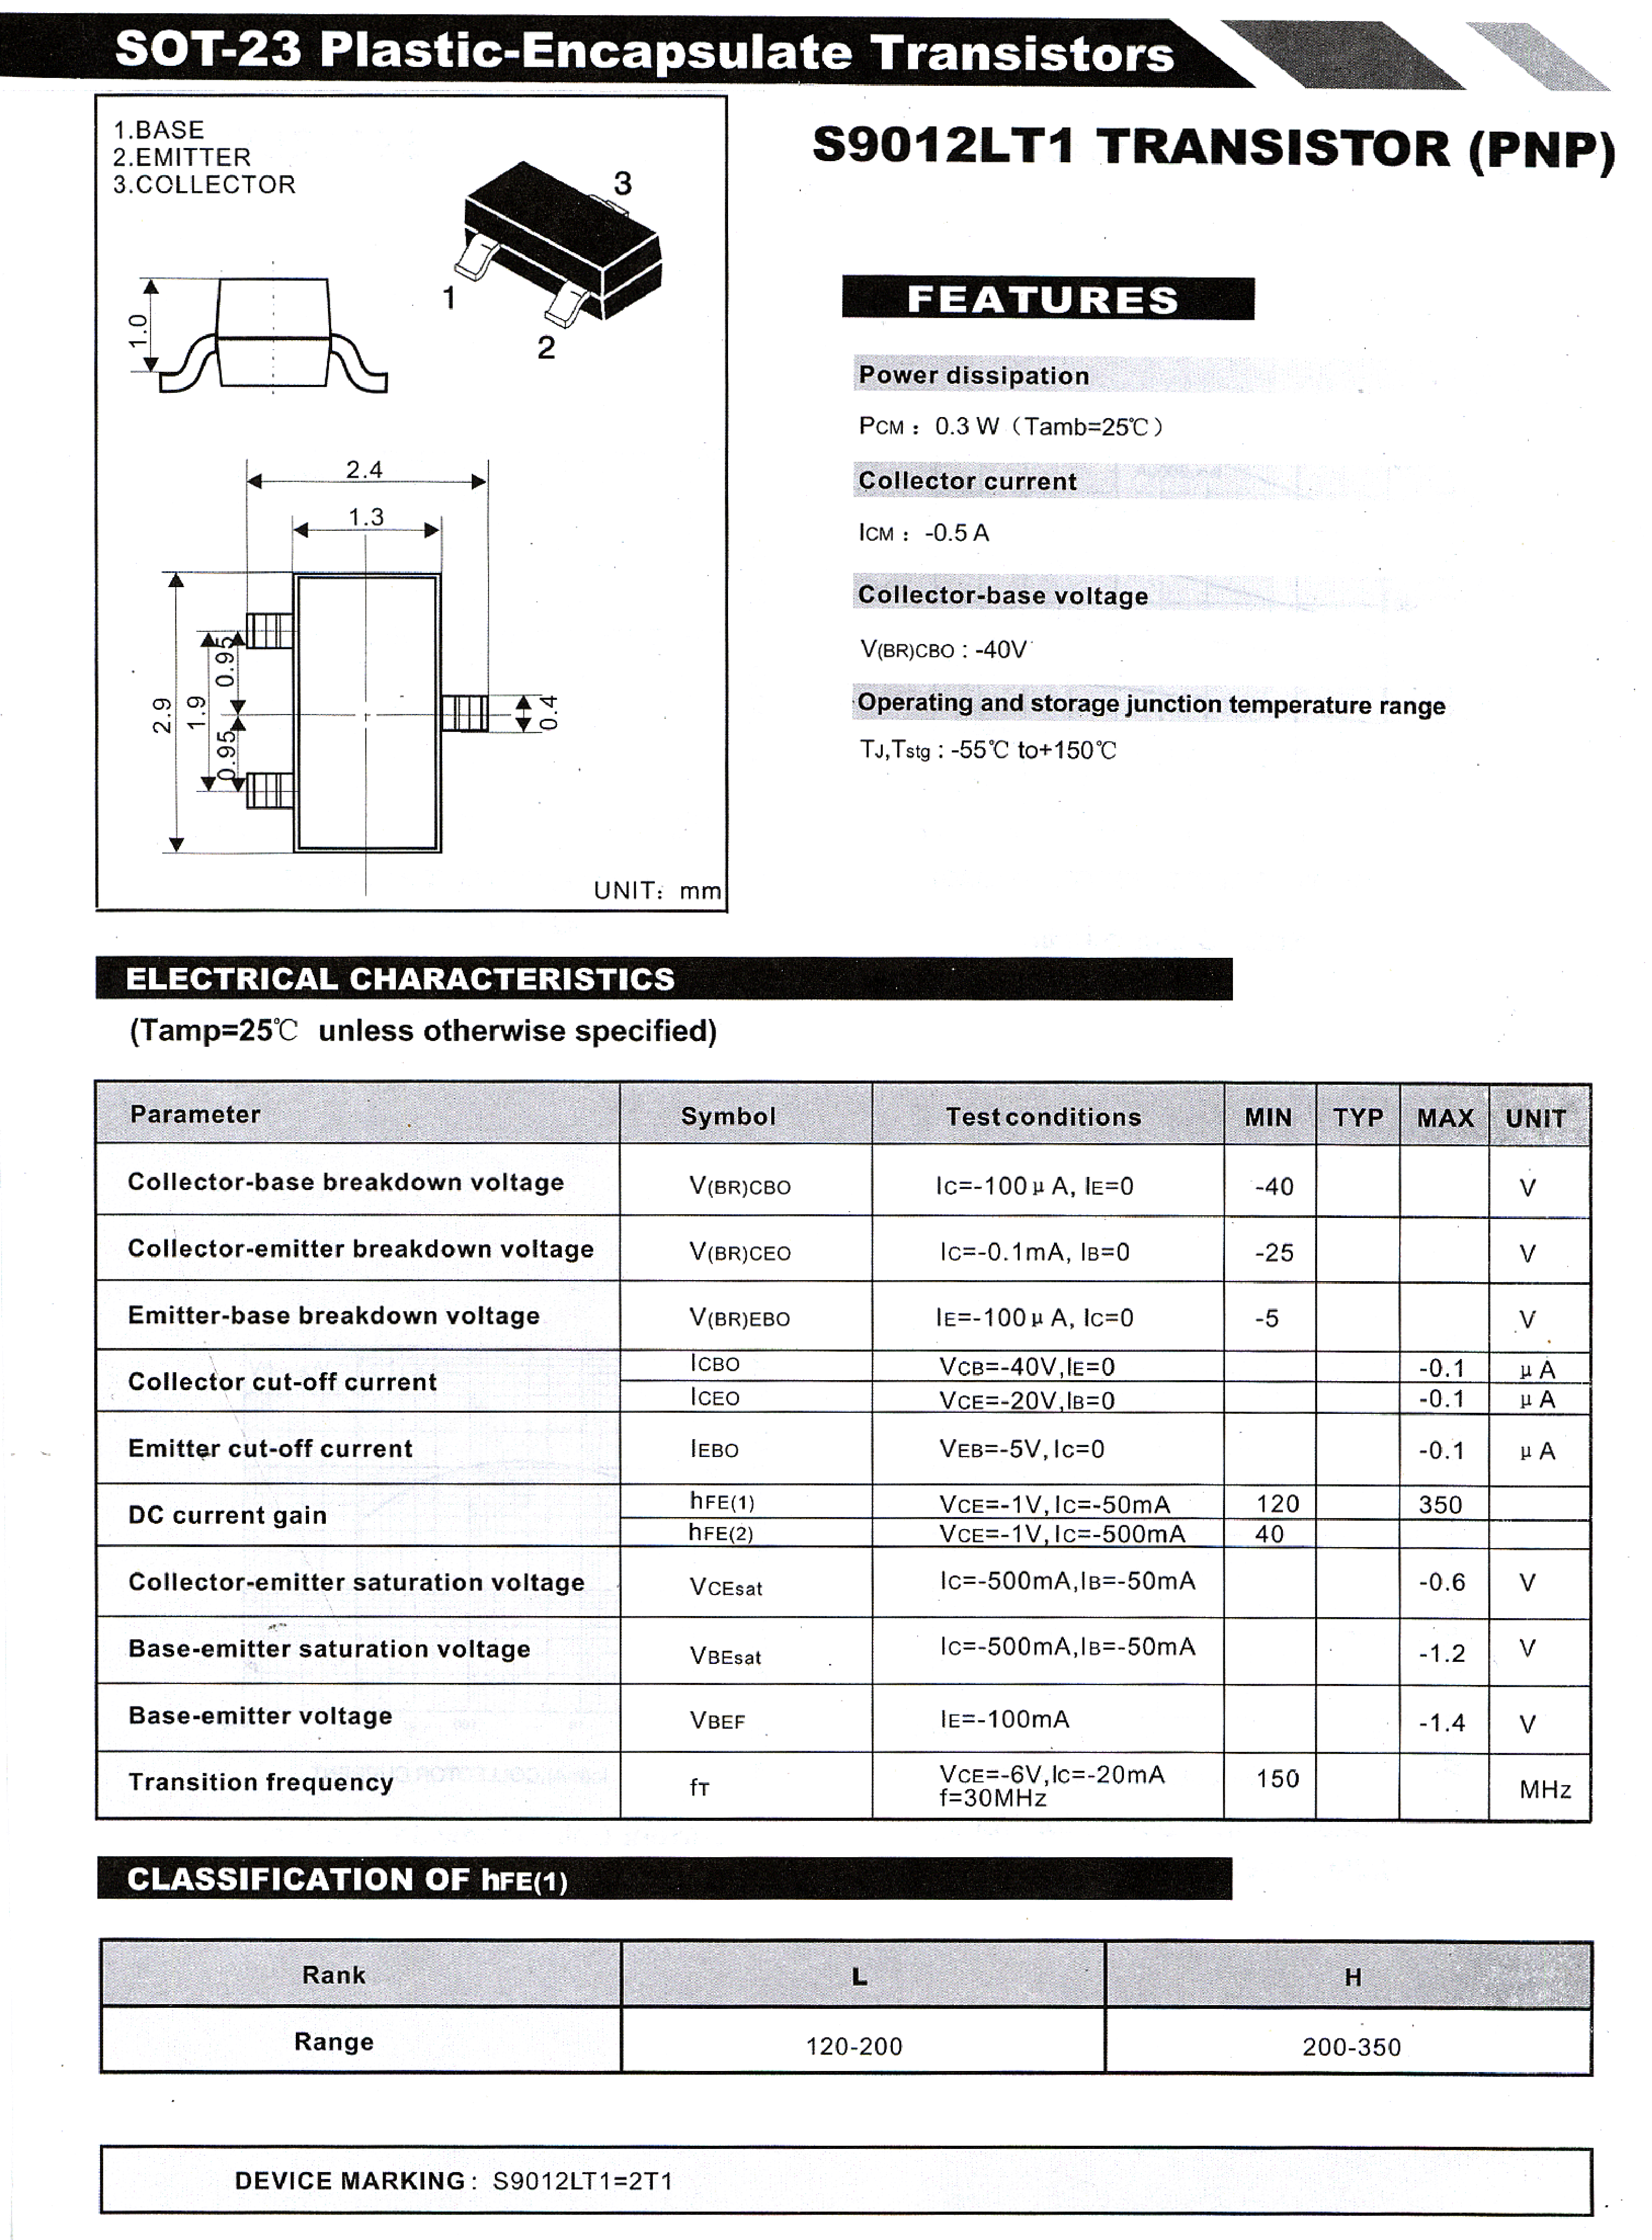 Drain-source breakdown voltage: 60 v continuous drain current: 03 a resistance drain-source rds (on)